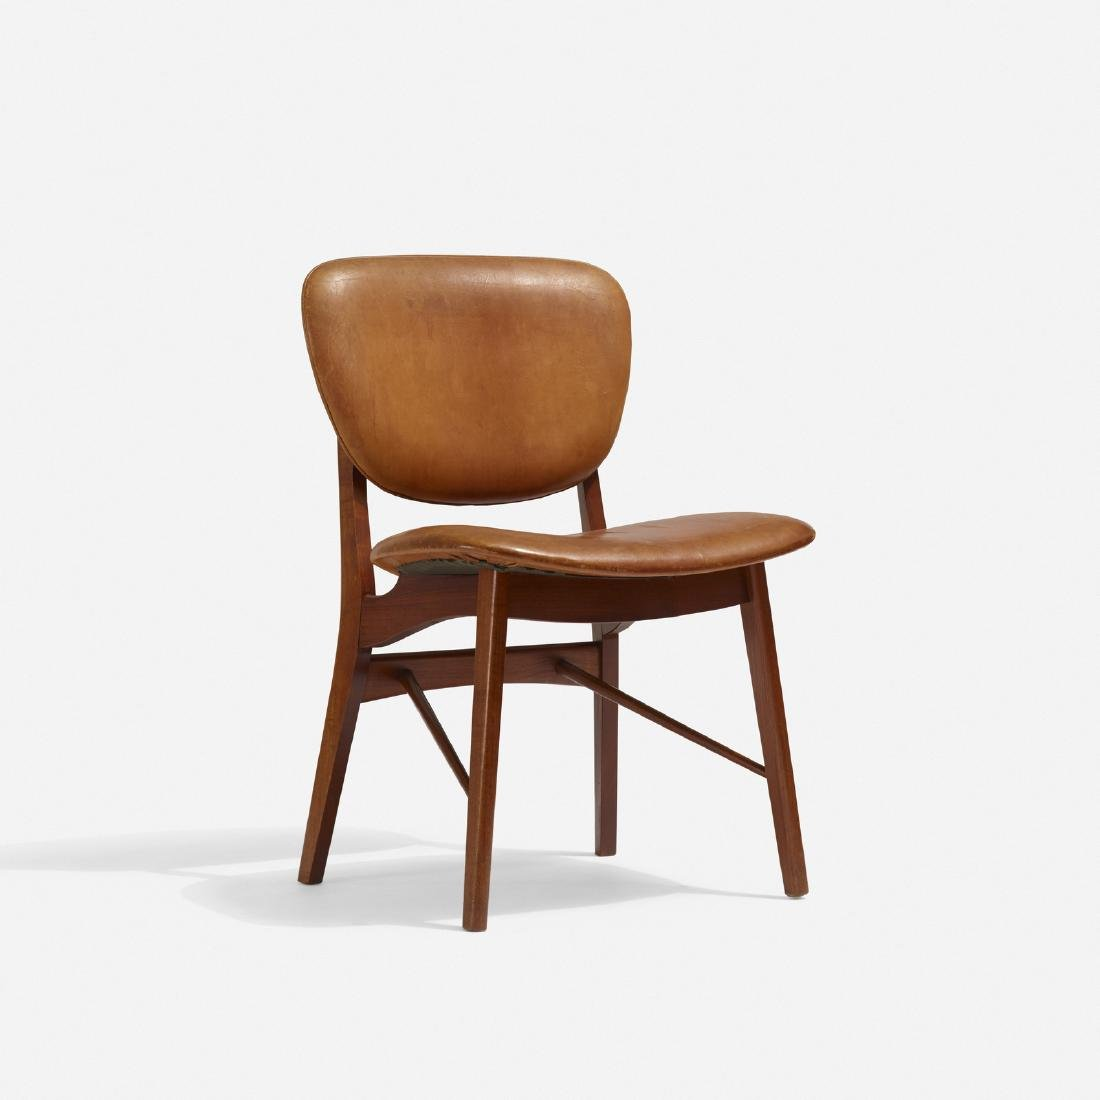 Finn Juhl, attribution, dining chair